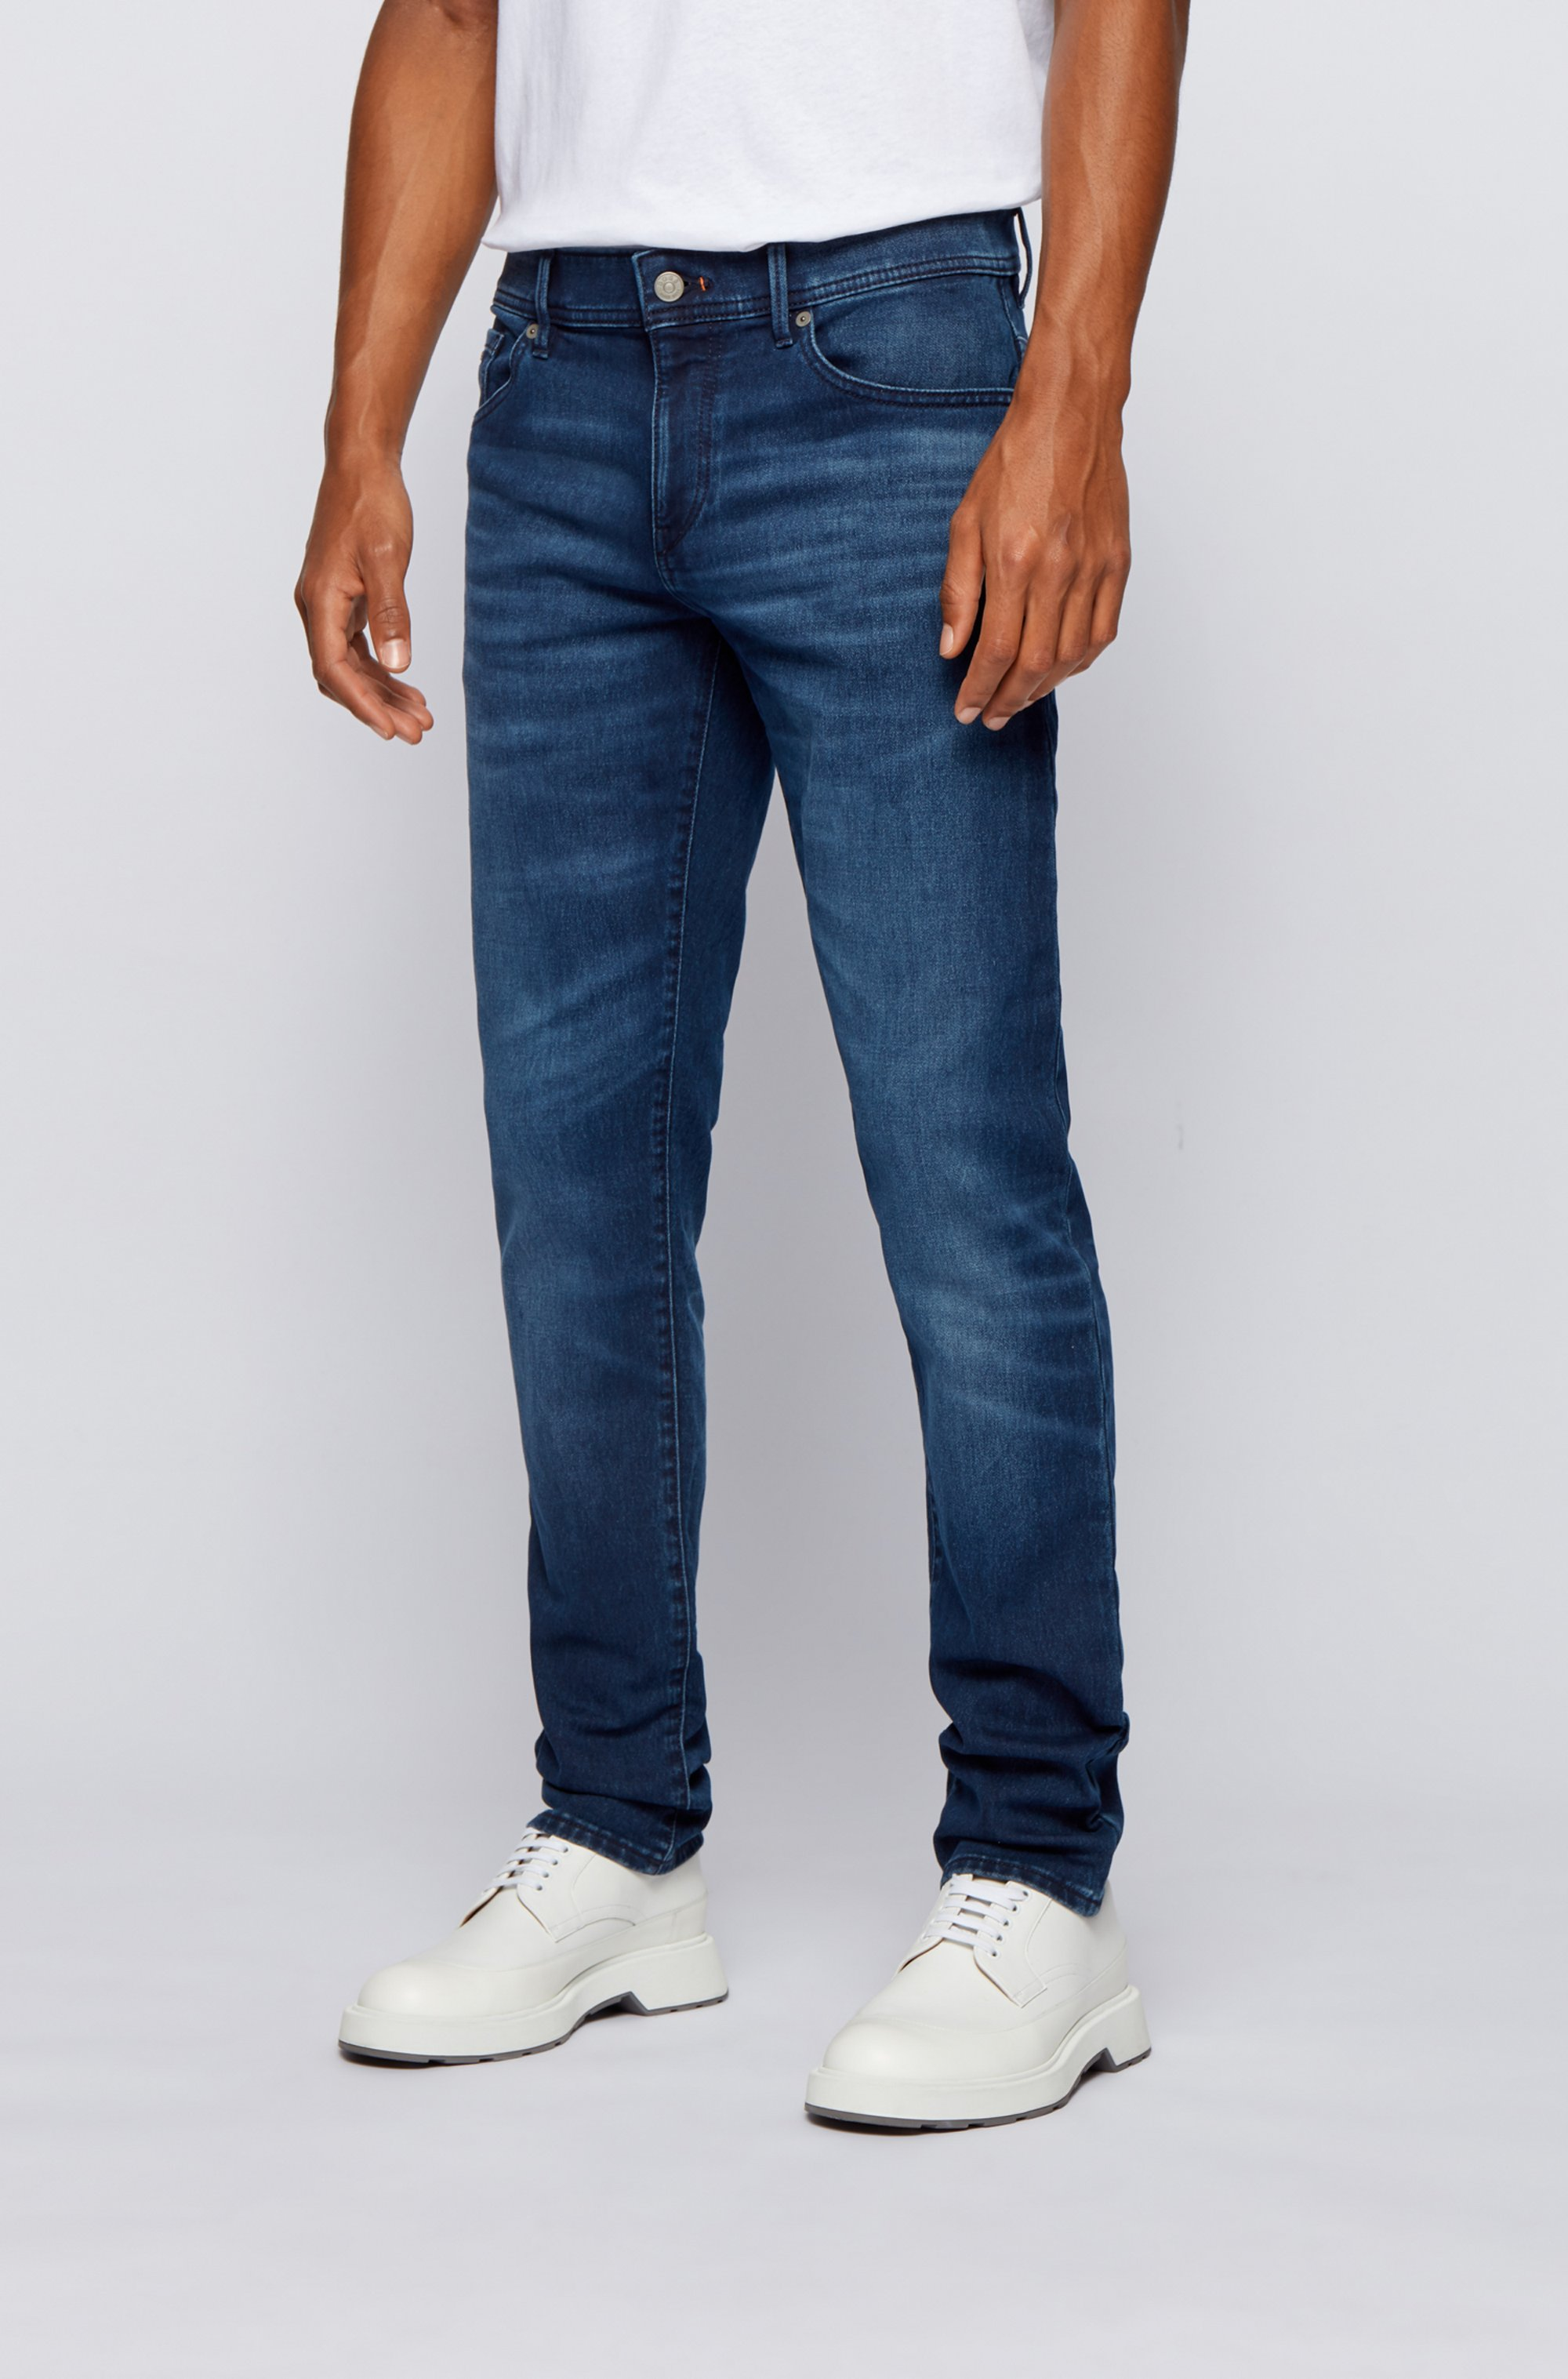 Skinny-fit jeans in overdyed dark-blue knitted denim